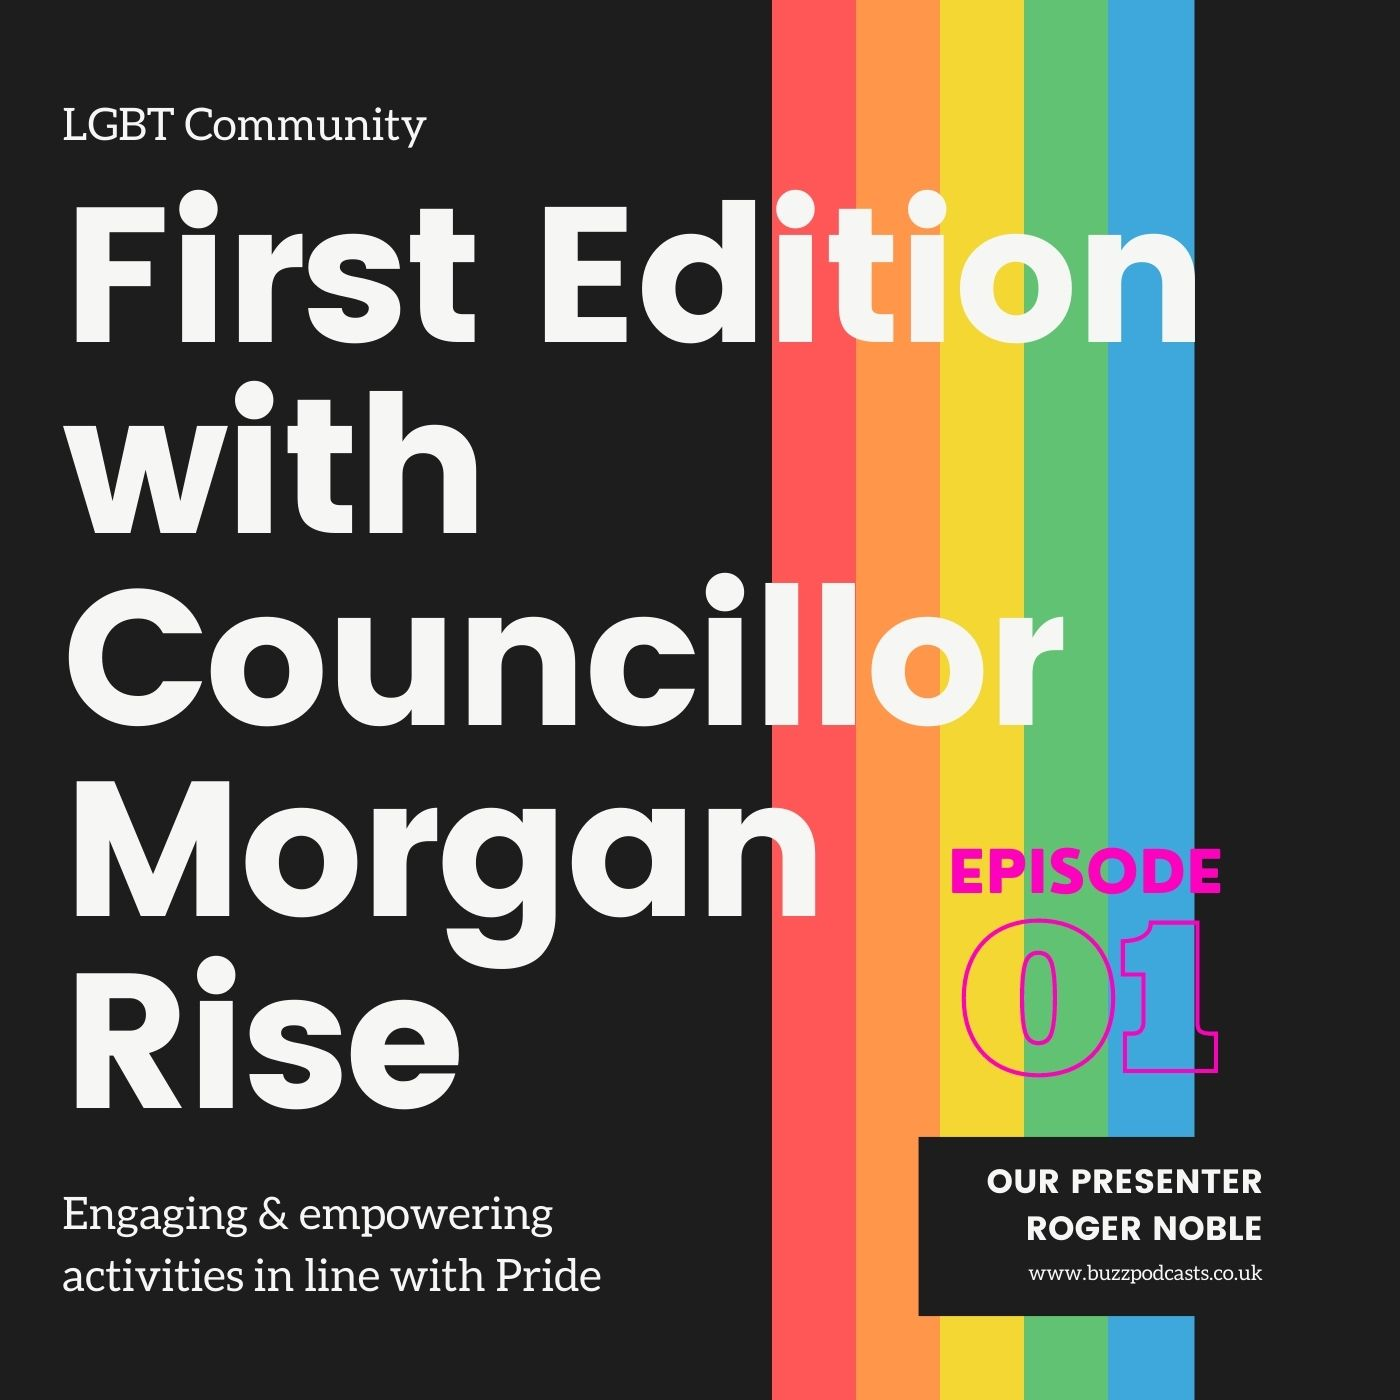 First Edition with Councillor Morgan Rise